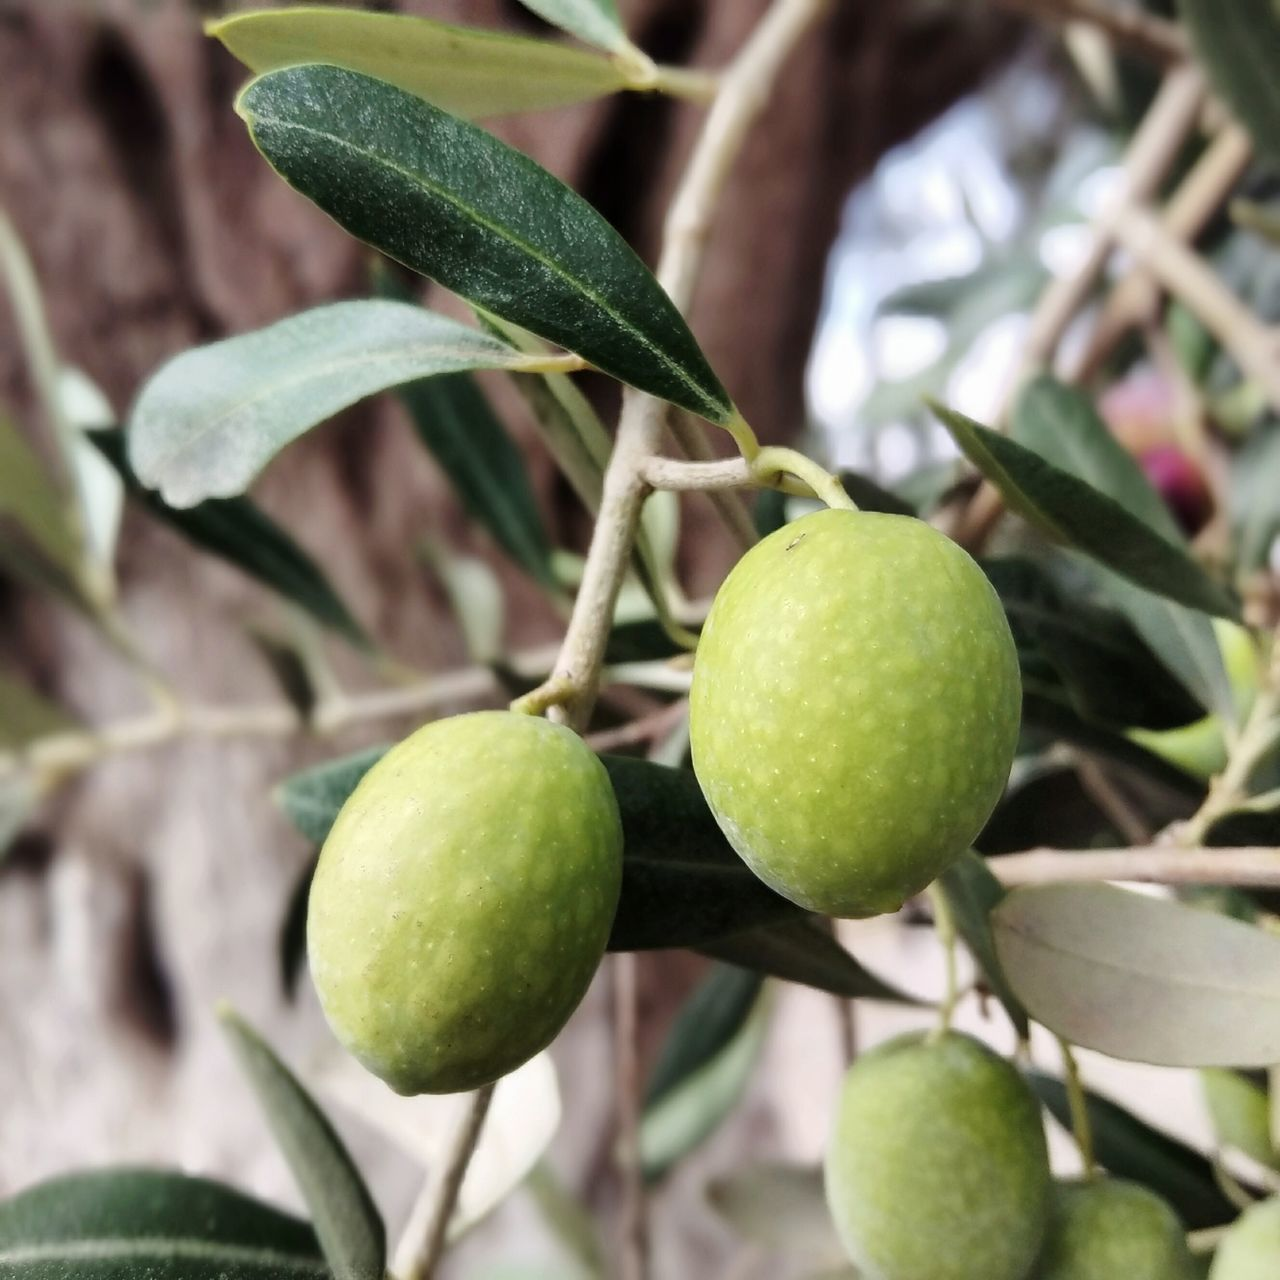 fruit, green color, growth, food and drink, leaf, food, freshness, healthy eating, branch, no people, outdoors, day, focus on foreground, close-up, citrus fruit, nature, tree, hanging, beauty in nature